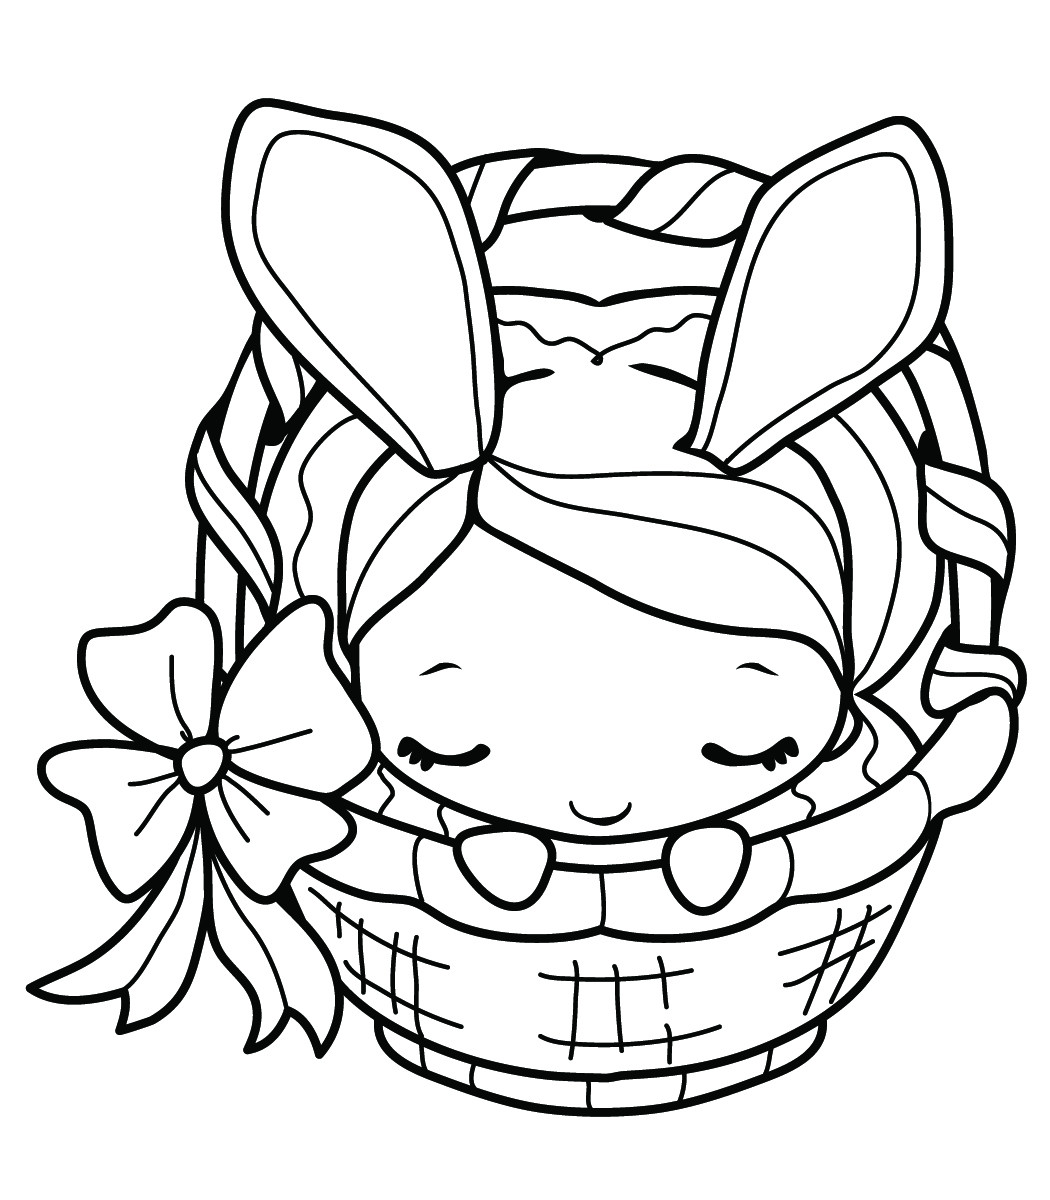 Best ideas about Easter Coloring Pages For Girls . Save or Pin EASTER COLOURING BUNNY GIRL COLORING PAGE Now.